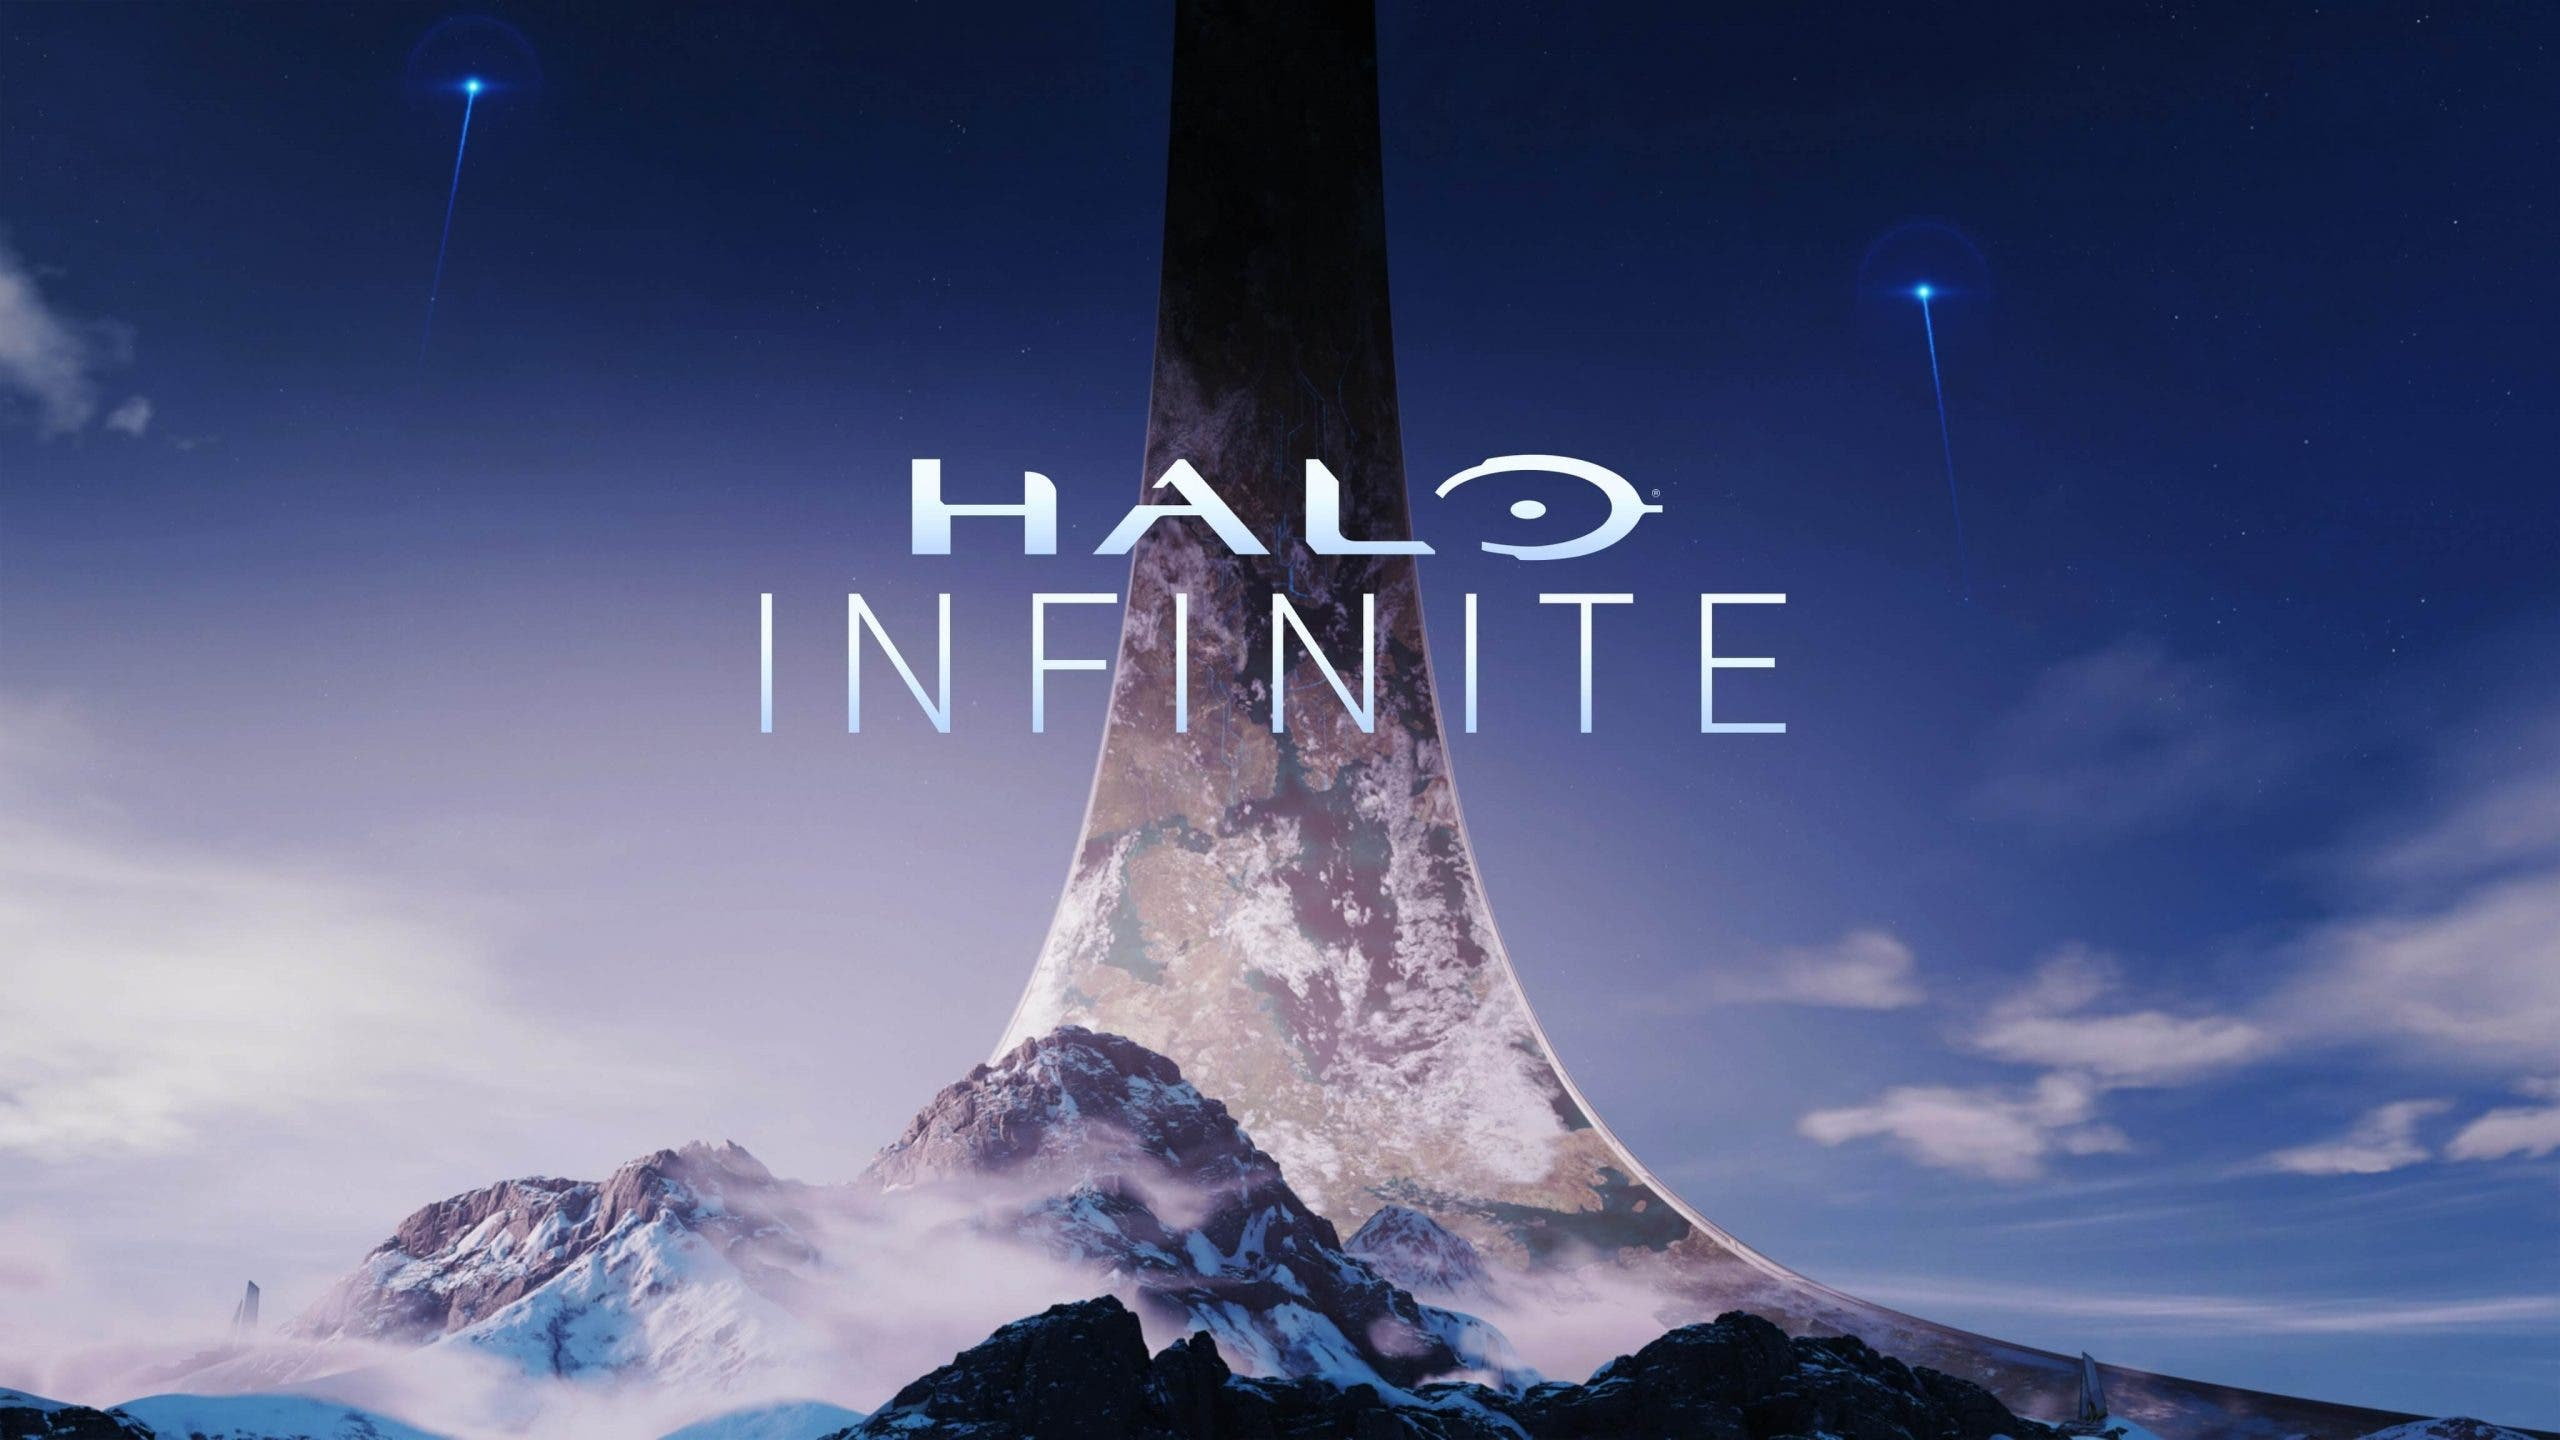 Halo Infinite transcurre en Zeta Halo